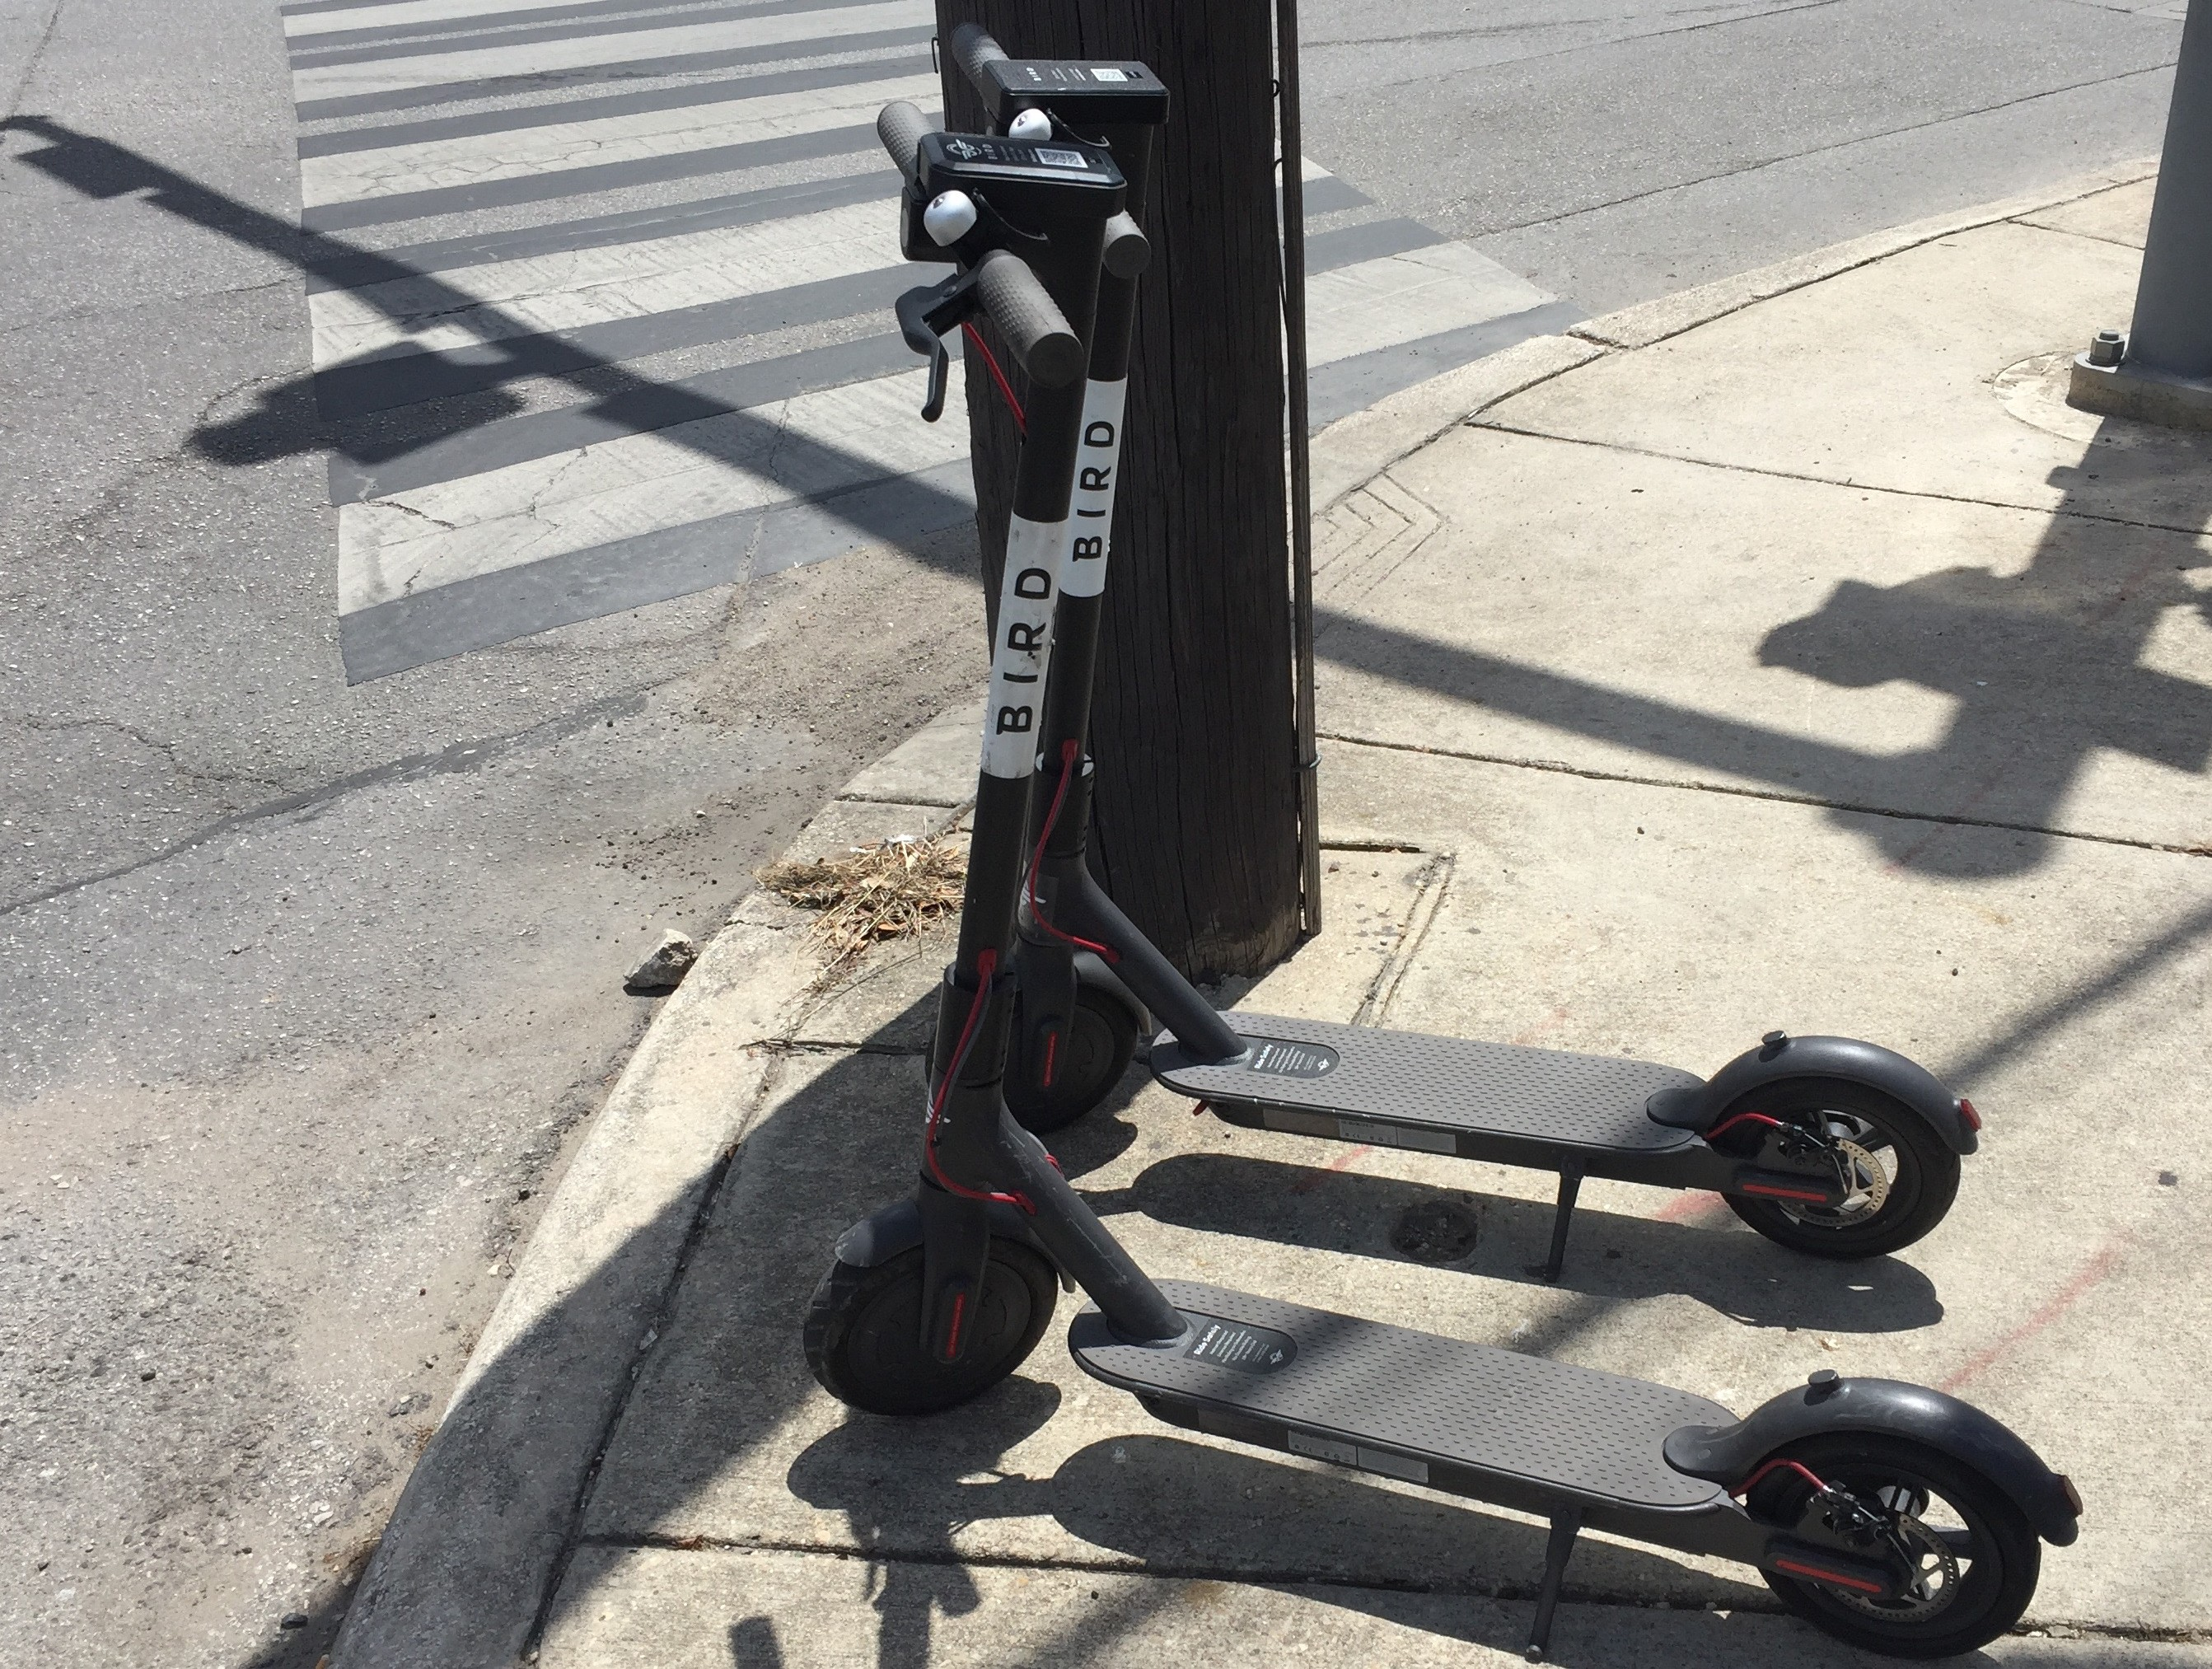 San Antonio Has Removed More Than 100 Dockless Scooters